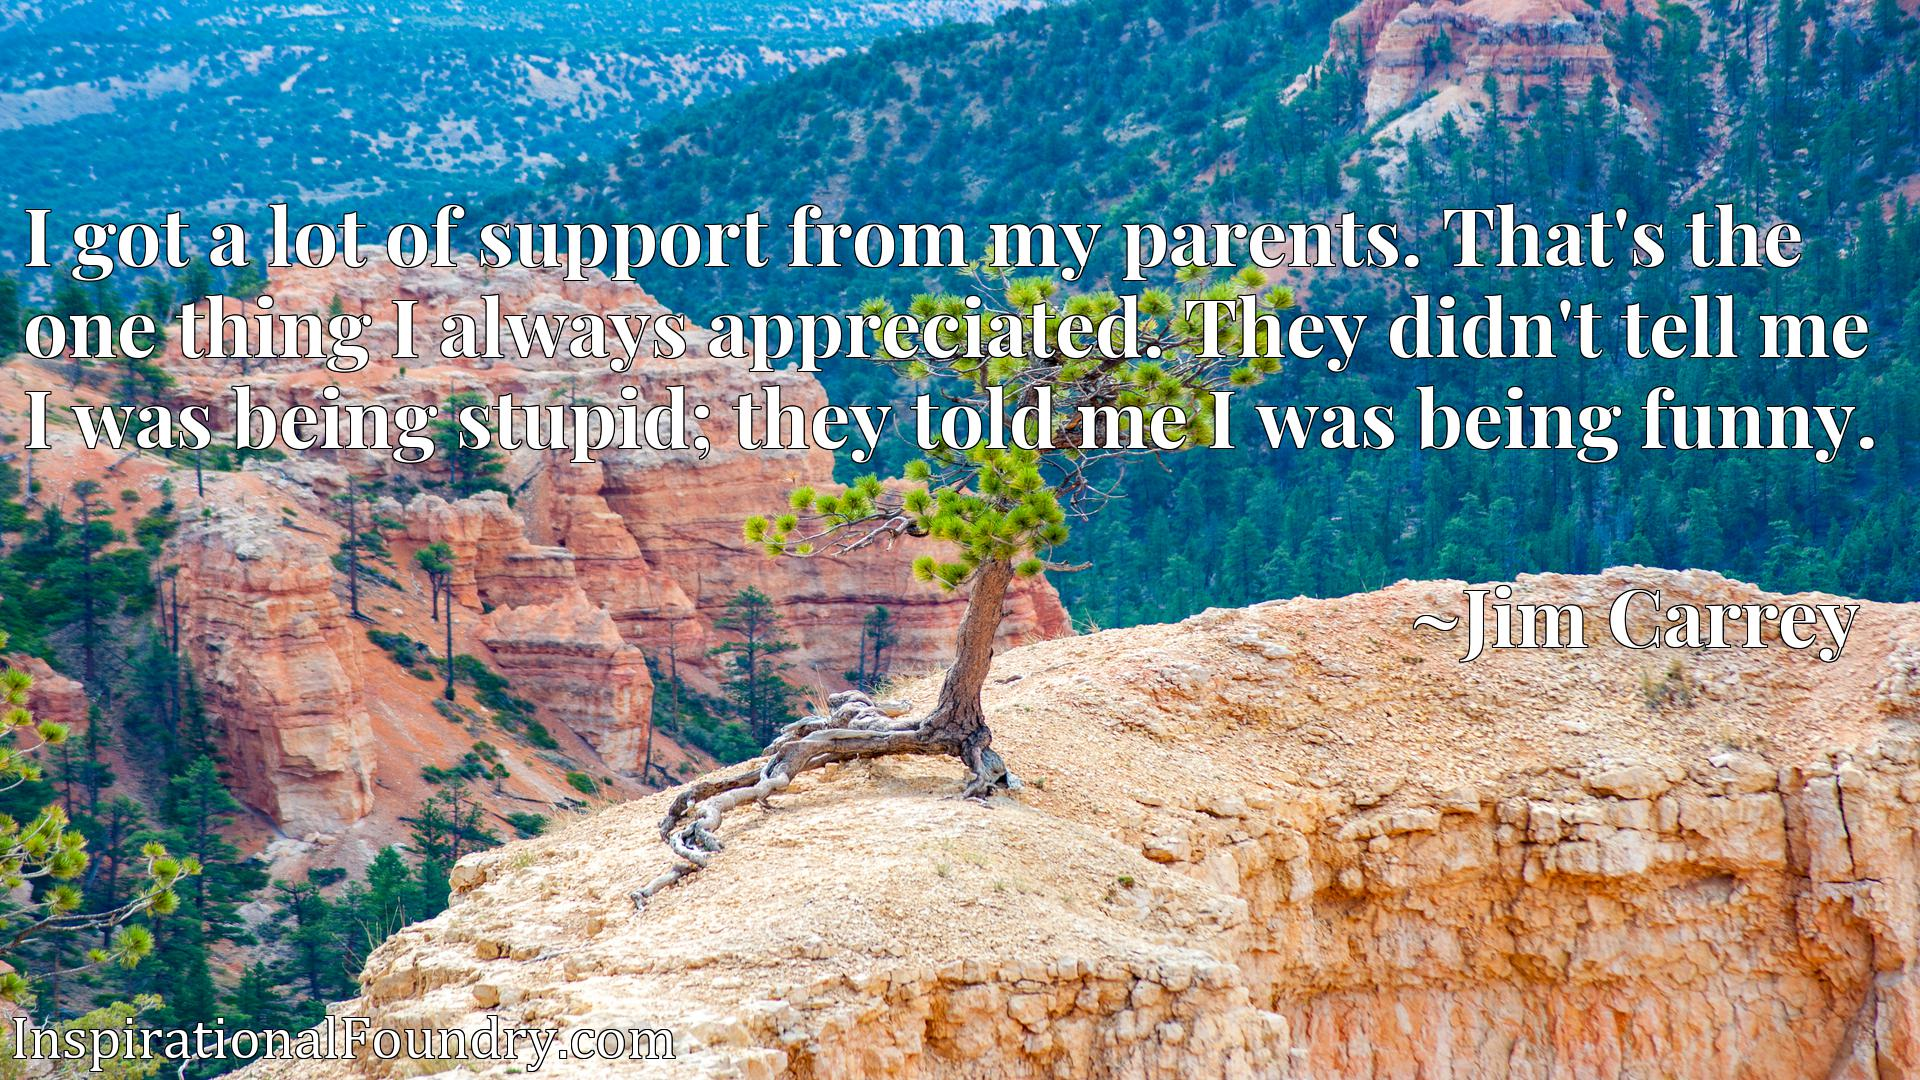 I got a lot of support from my parents. That's the one thing I always appreciated. They didn't tell me I was being stupid; they told me I was being funny.